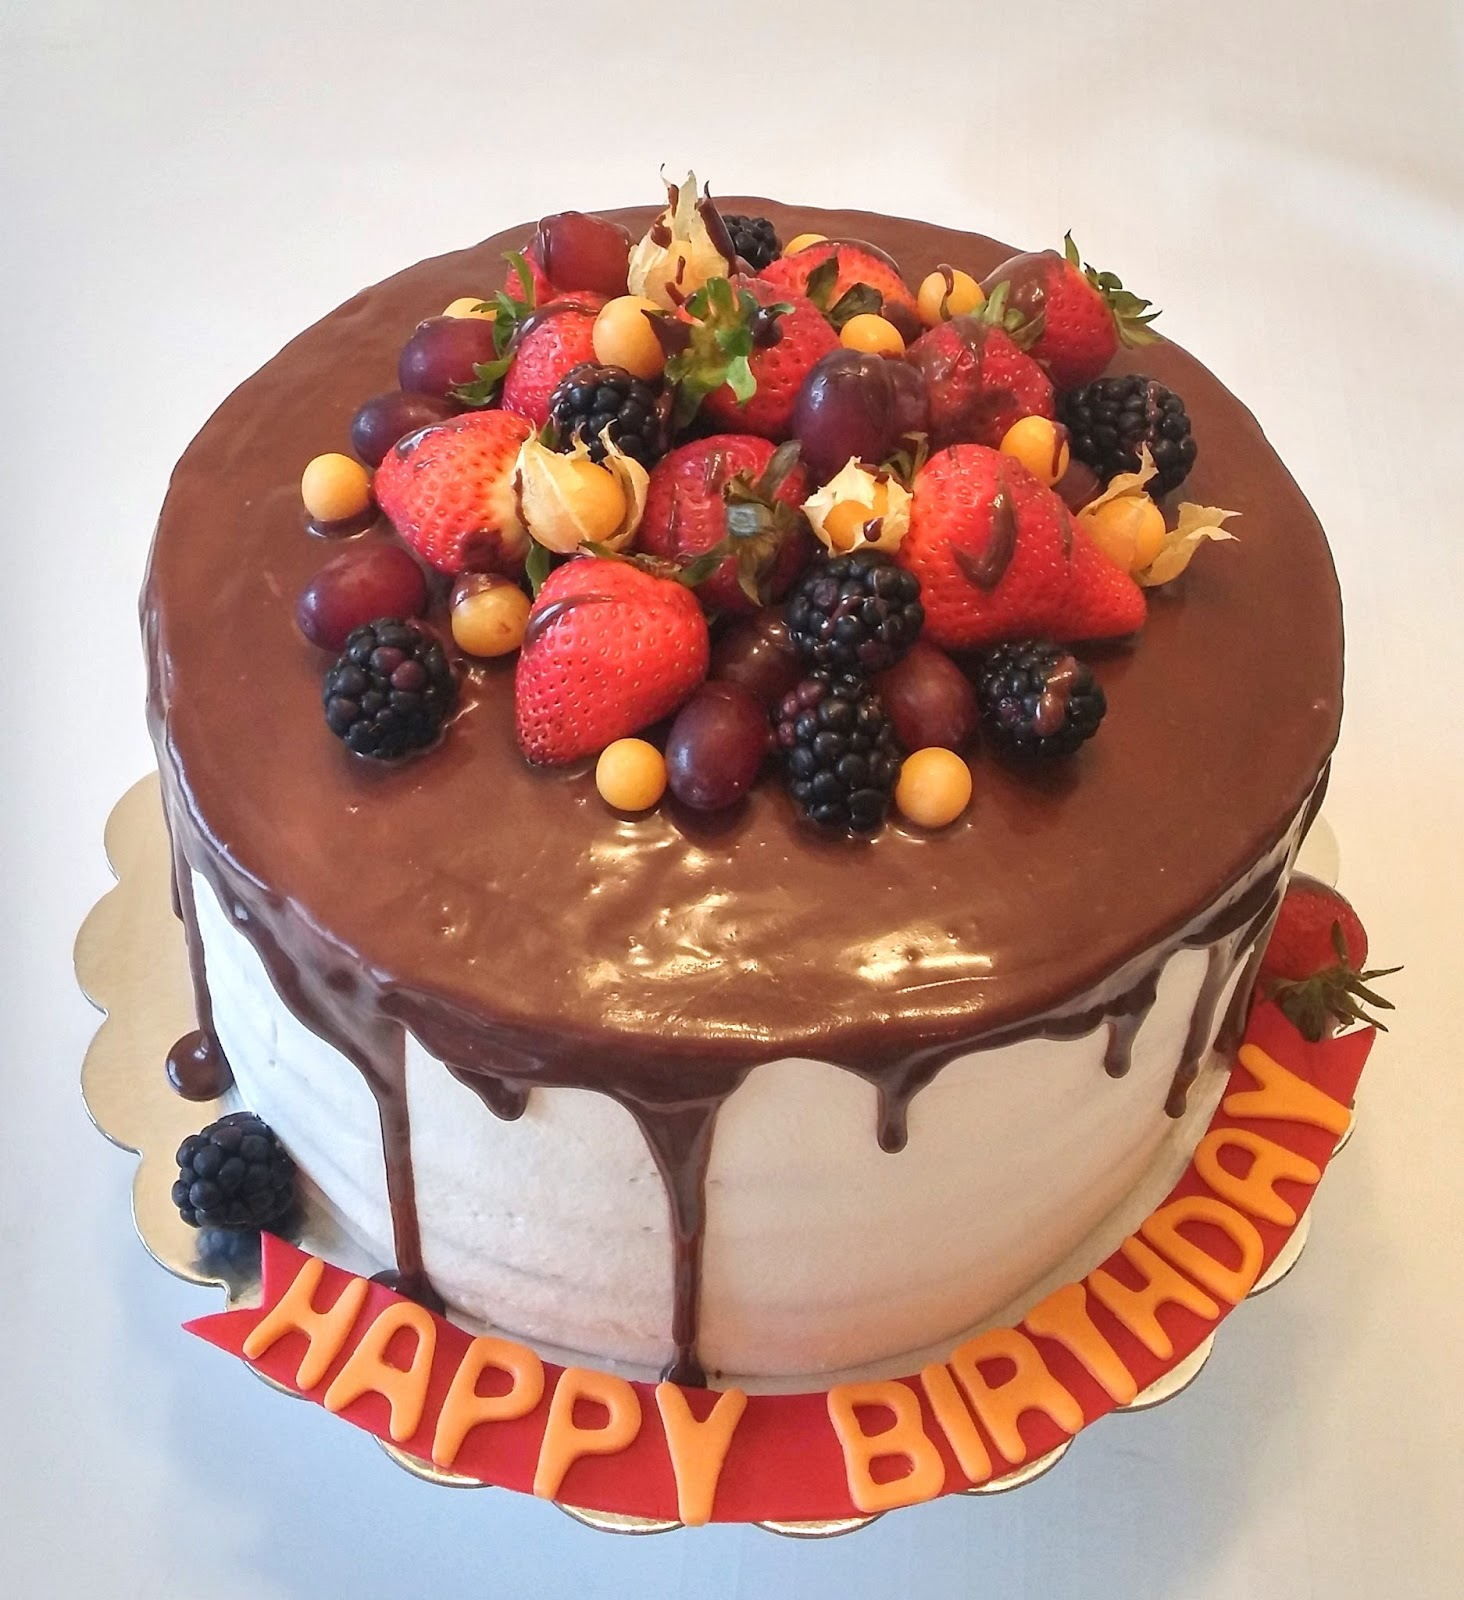 This Birthday Cake Is Made Out Of Vanilla Layers The Filling Very Light And Fluffy Cream Full Fresh Raspberries Blackberries